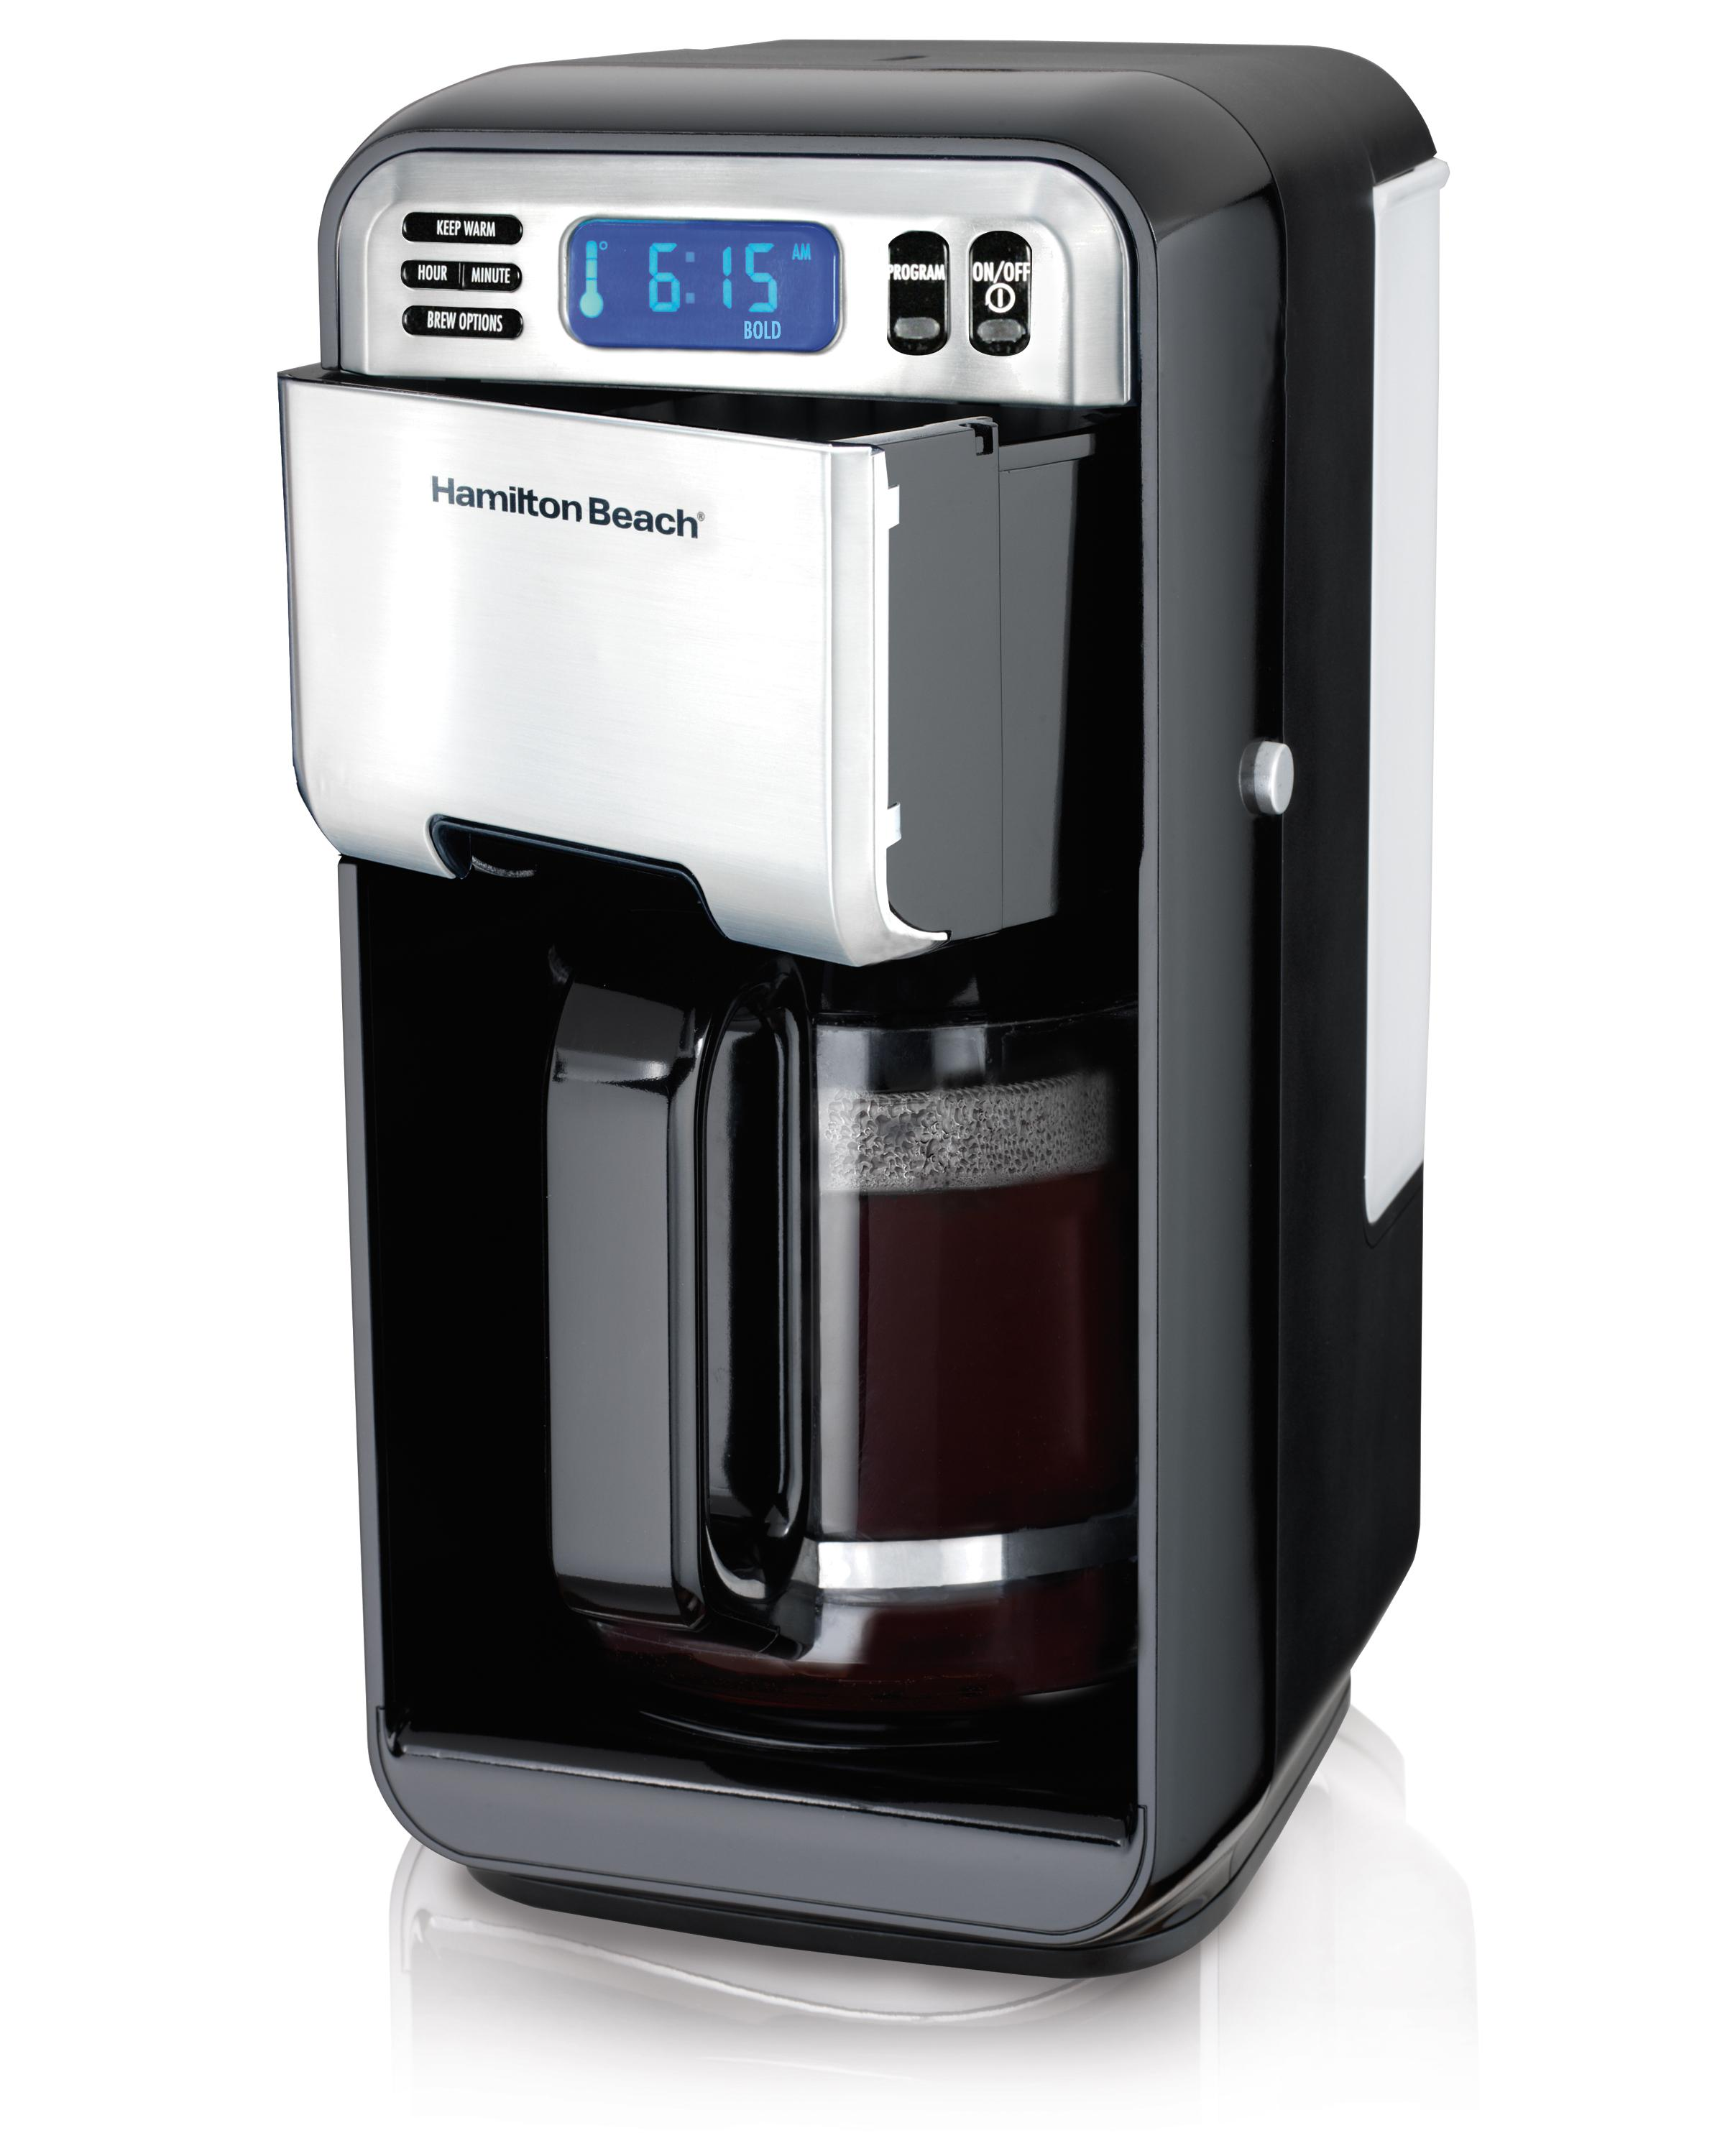 Hamilton beach 12 cup digital coffee maker Coffee maker brands